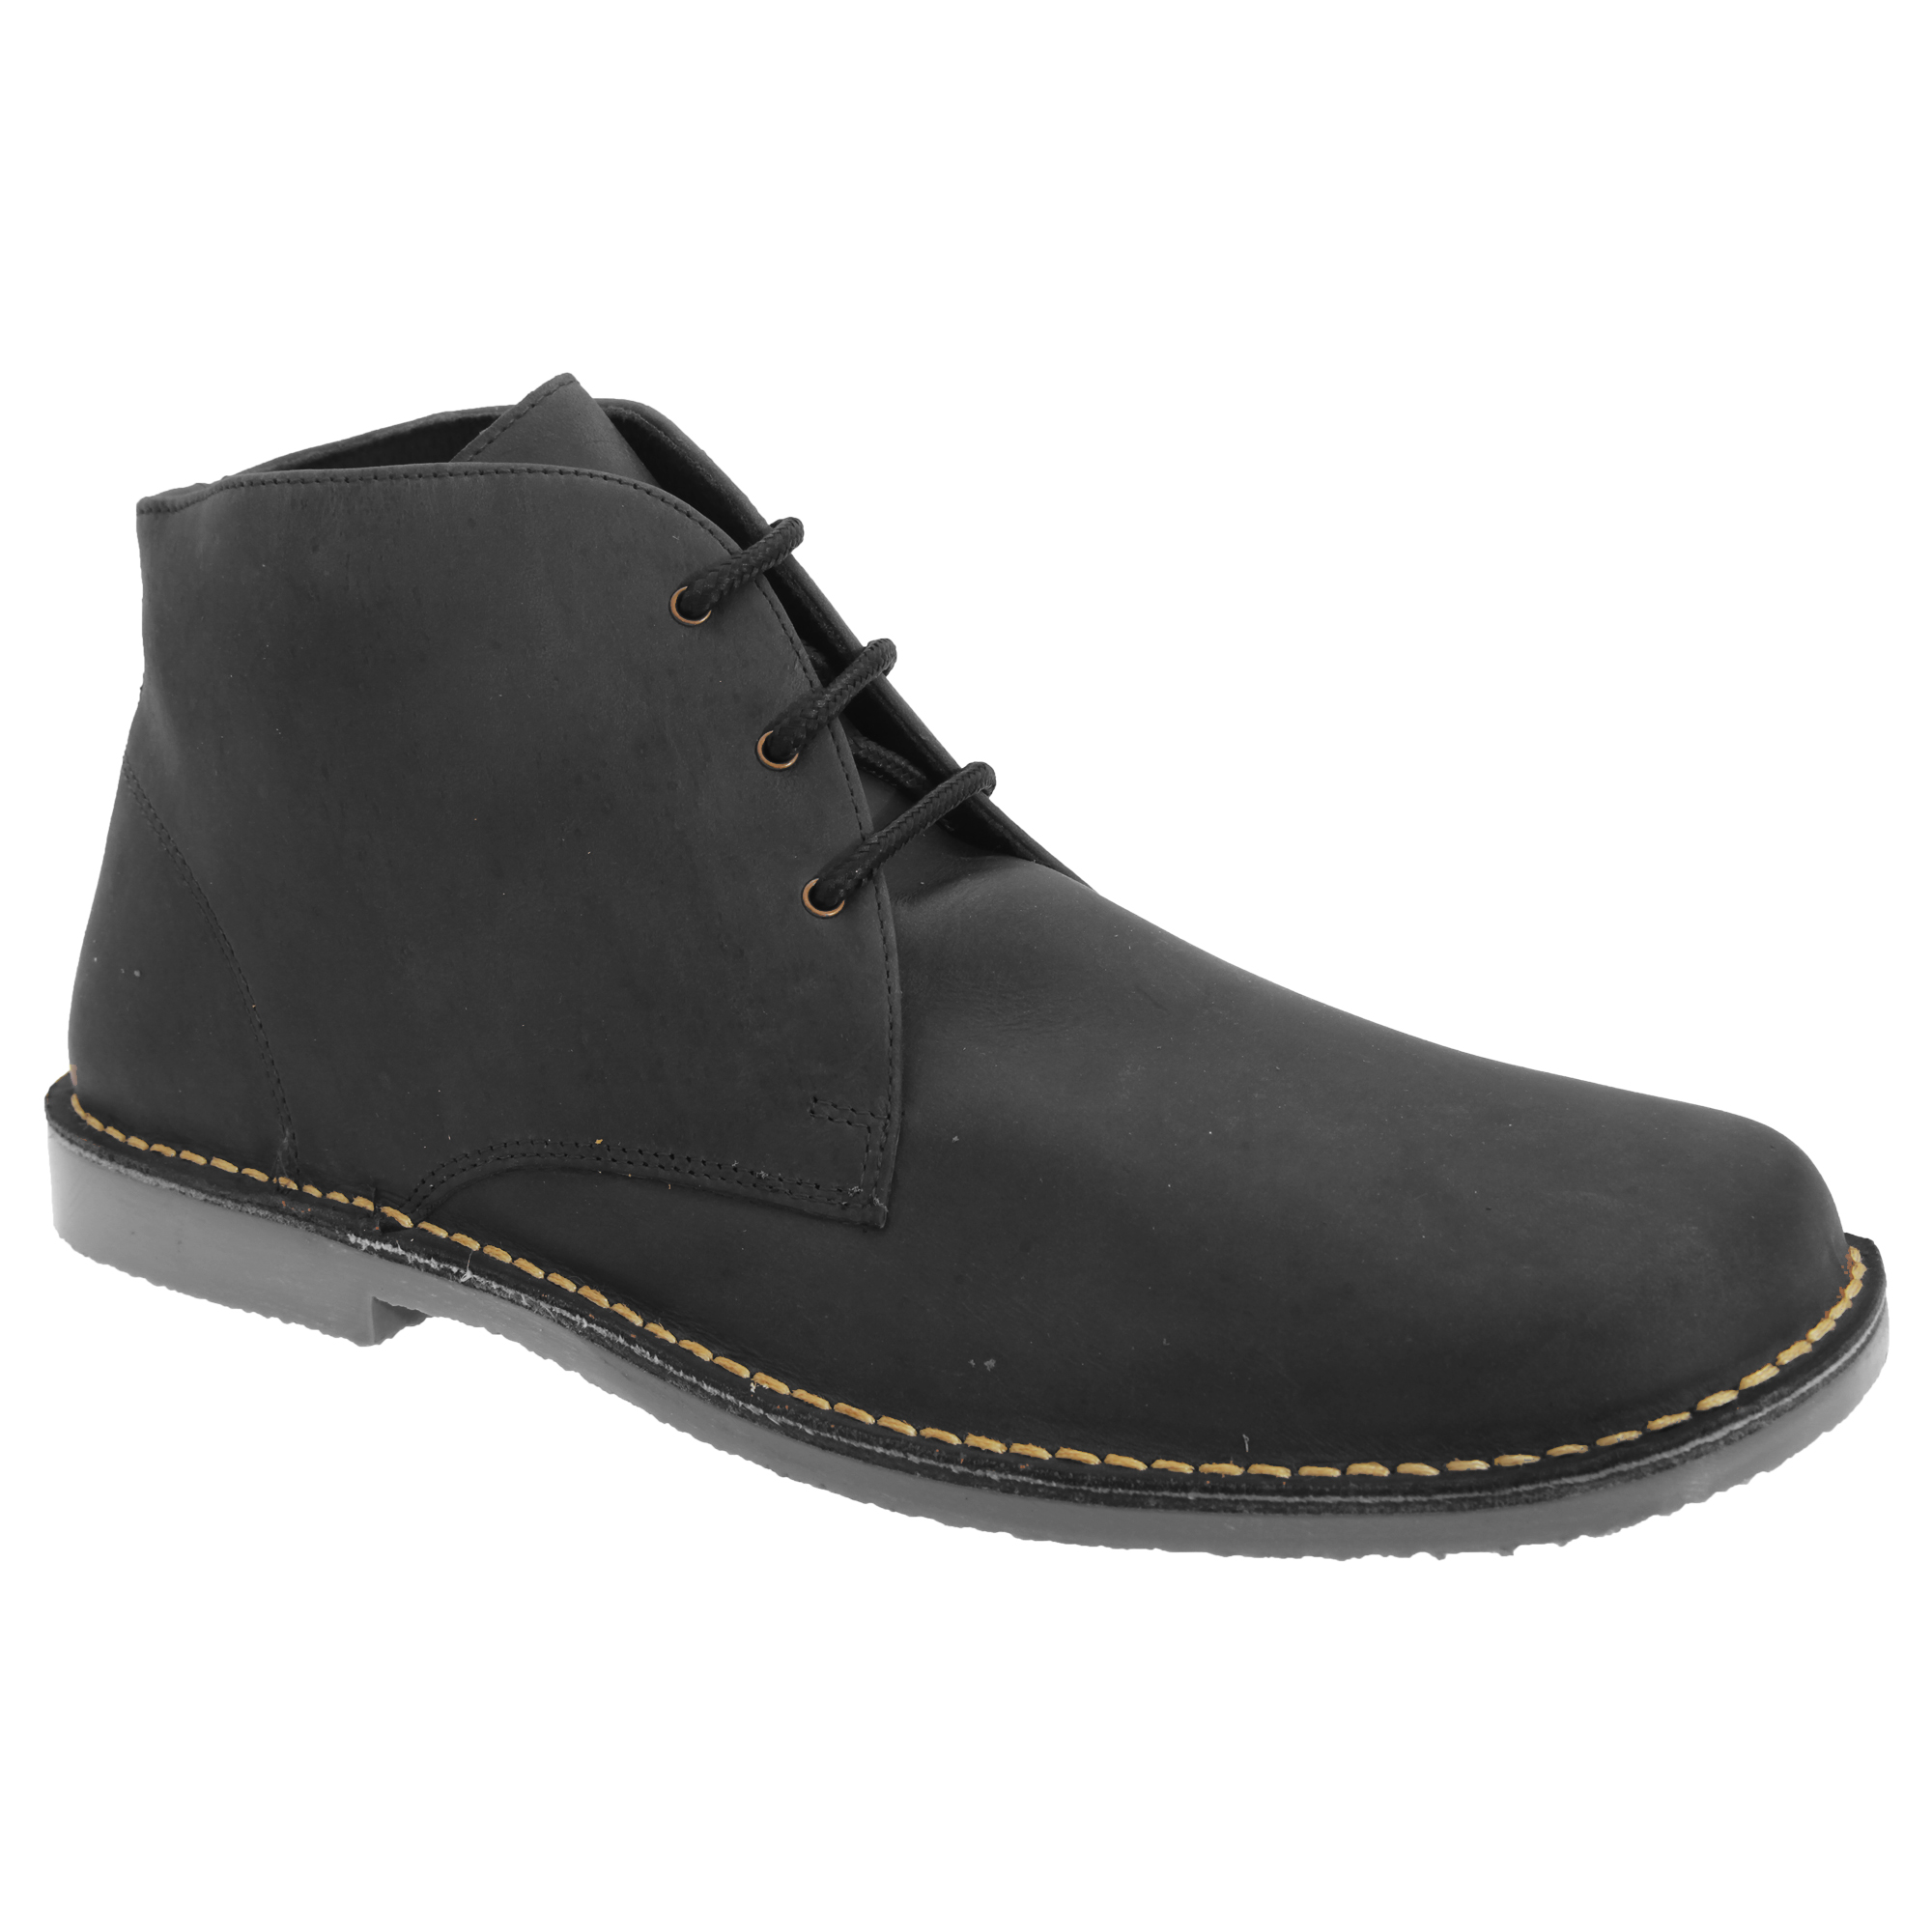 roamers mens waxy leather fulfit casual desert ankle boots